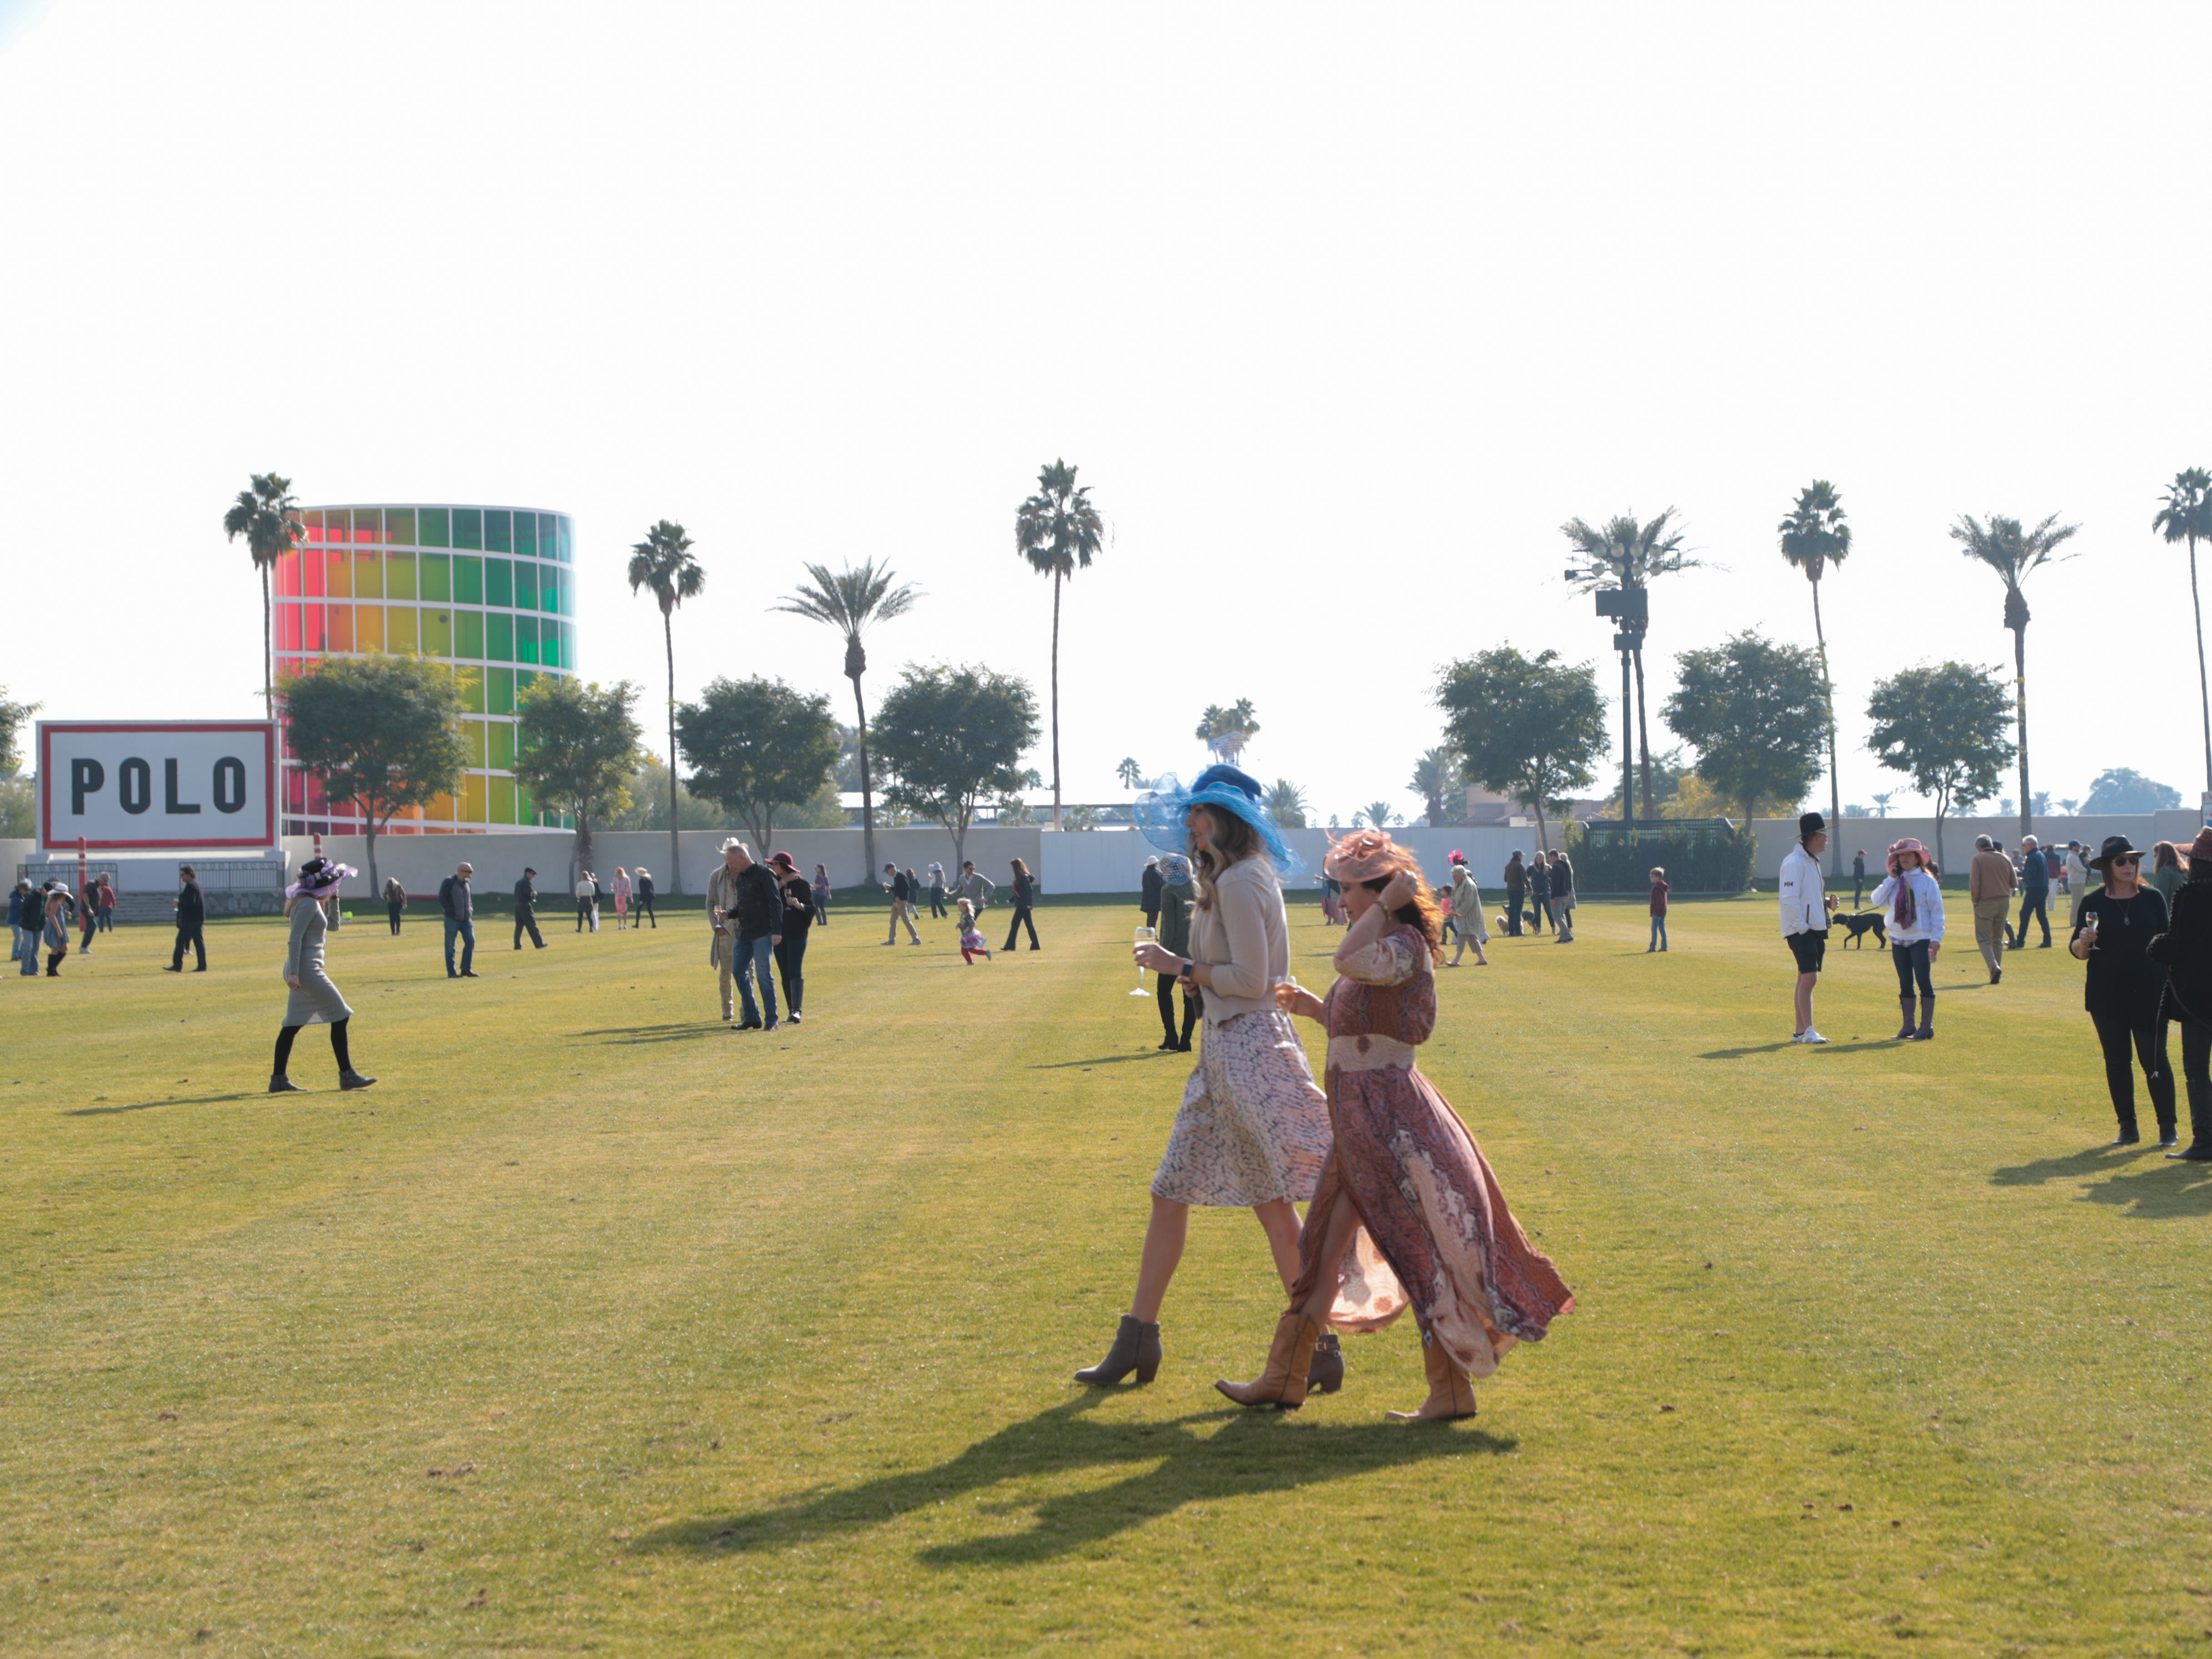 Polo spectators flood the polo field to fill in divets between chukkers at opening day at the Empire Polo Club, Indio, Calif., Sunday, January 6, 2018.